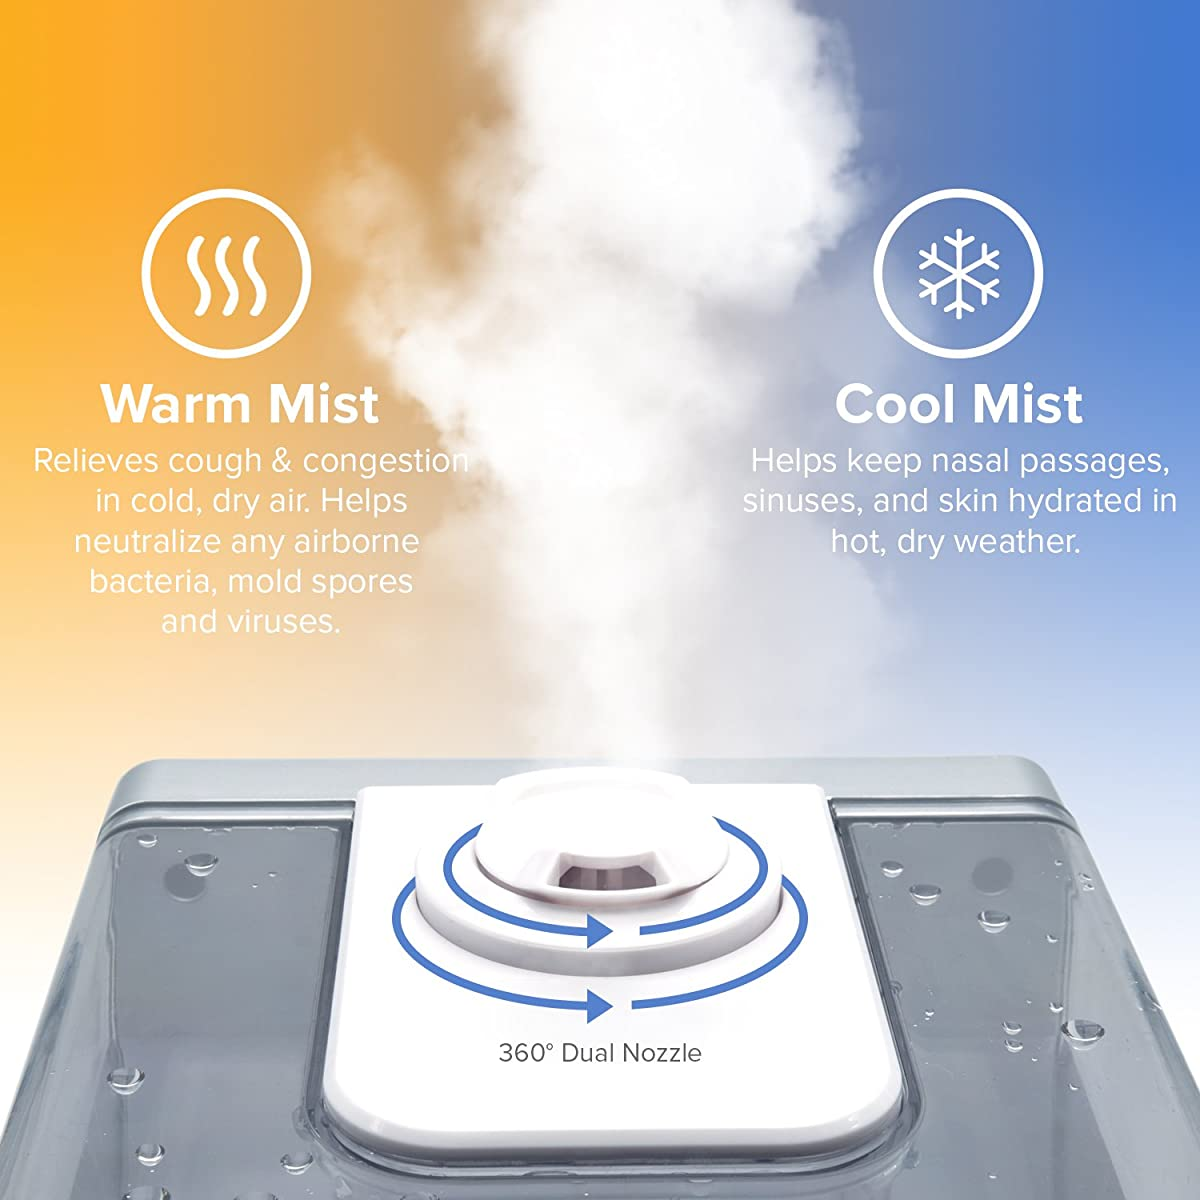 Levoit Cool & Warm Mist Humidifier Ultrasonic Air Vaporizer, Remote Control 6L/1.6 Gallon Capacity/Whisper-quiet with Automatic Shut-off Timer Aroma Essential Function (White)